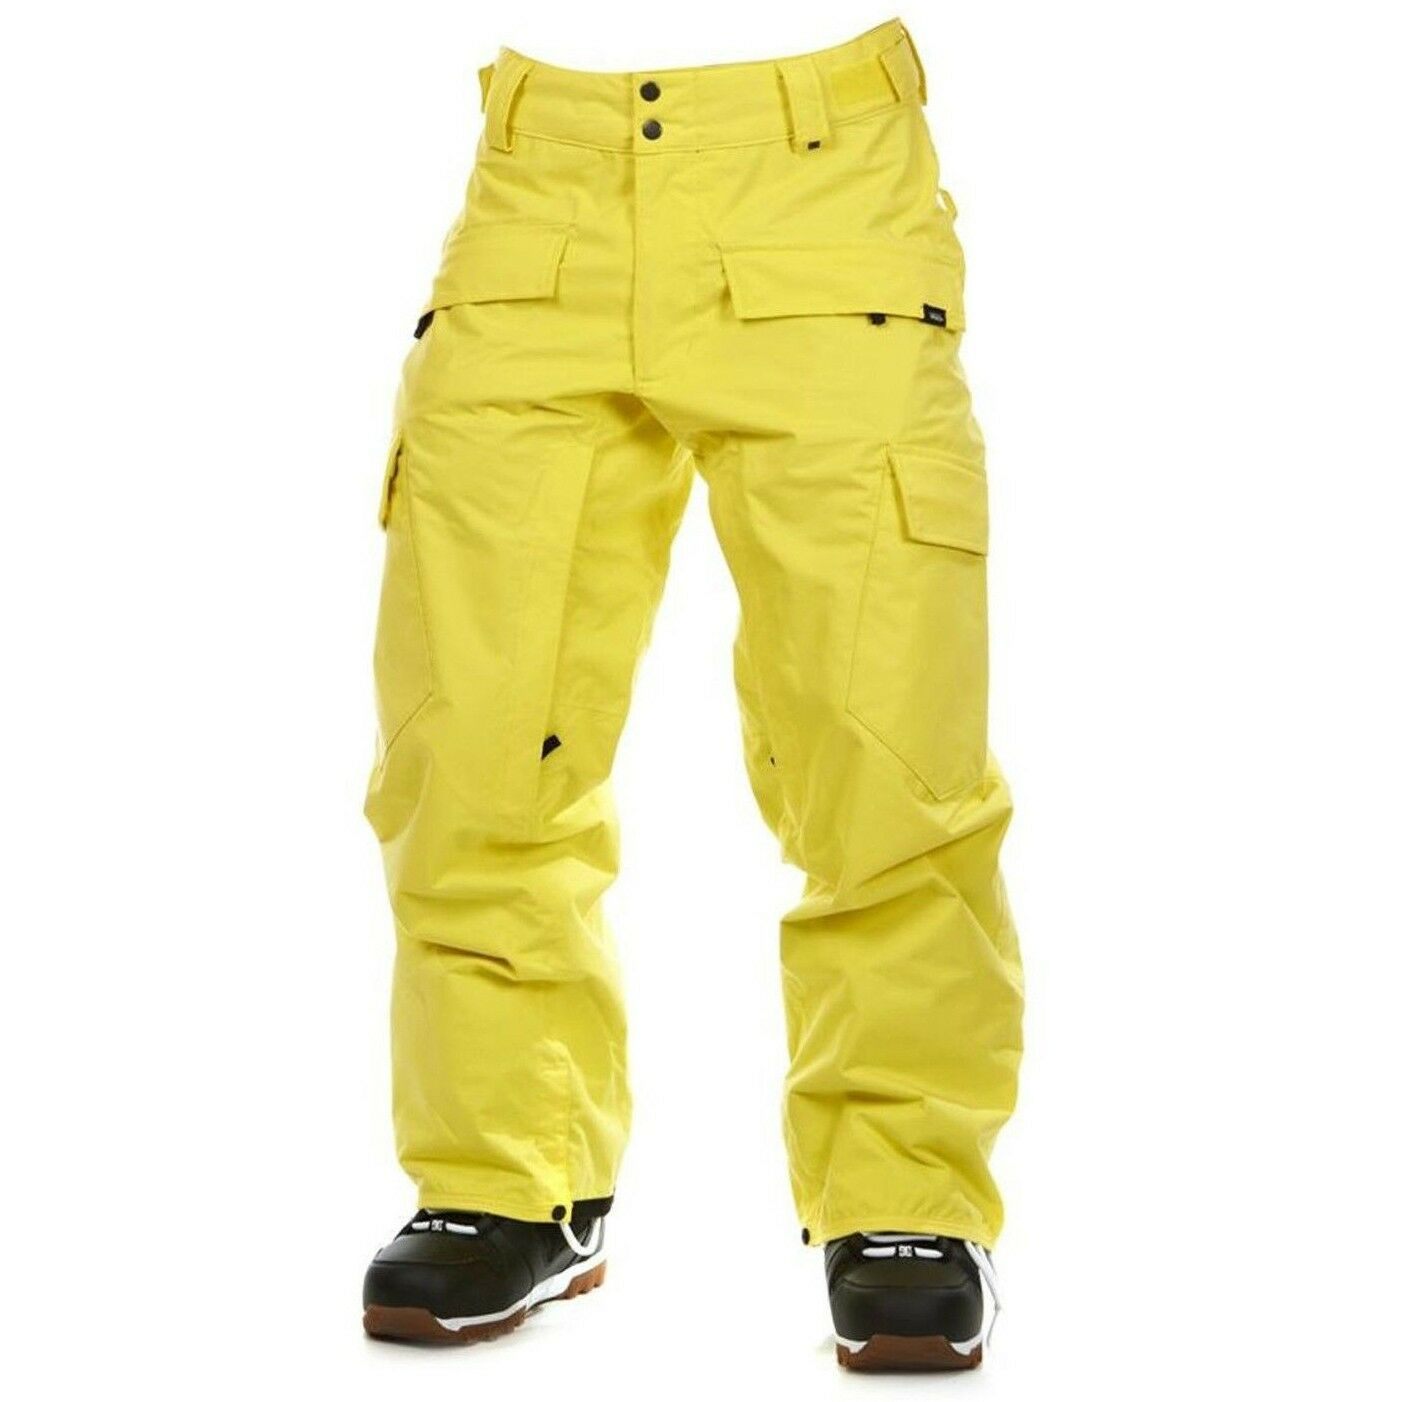 Vans Barkworth Ski 10K Technical Waterproof Snowboard Trouser Salopettes  Pants  sale with high discount